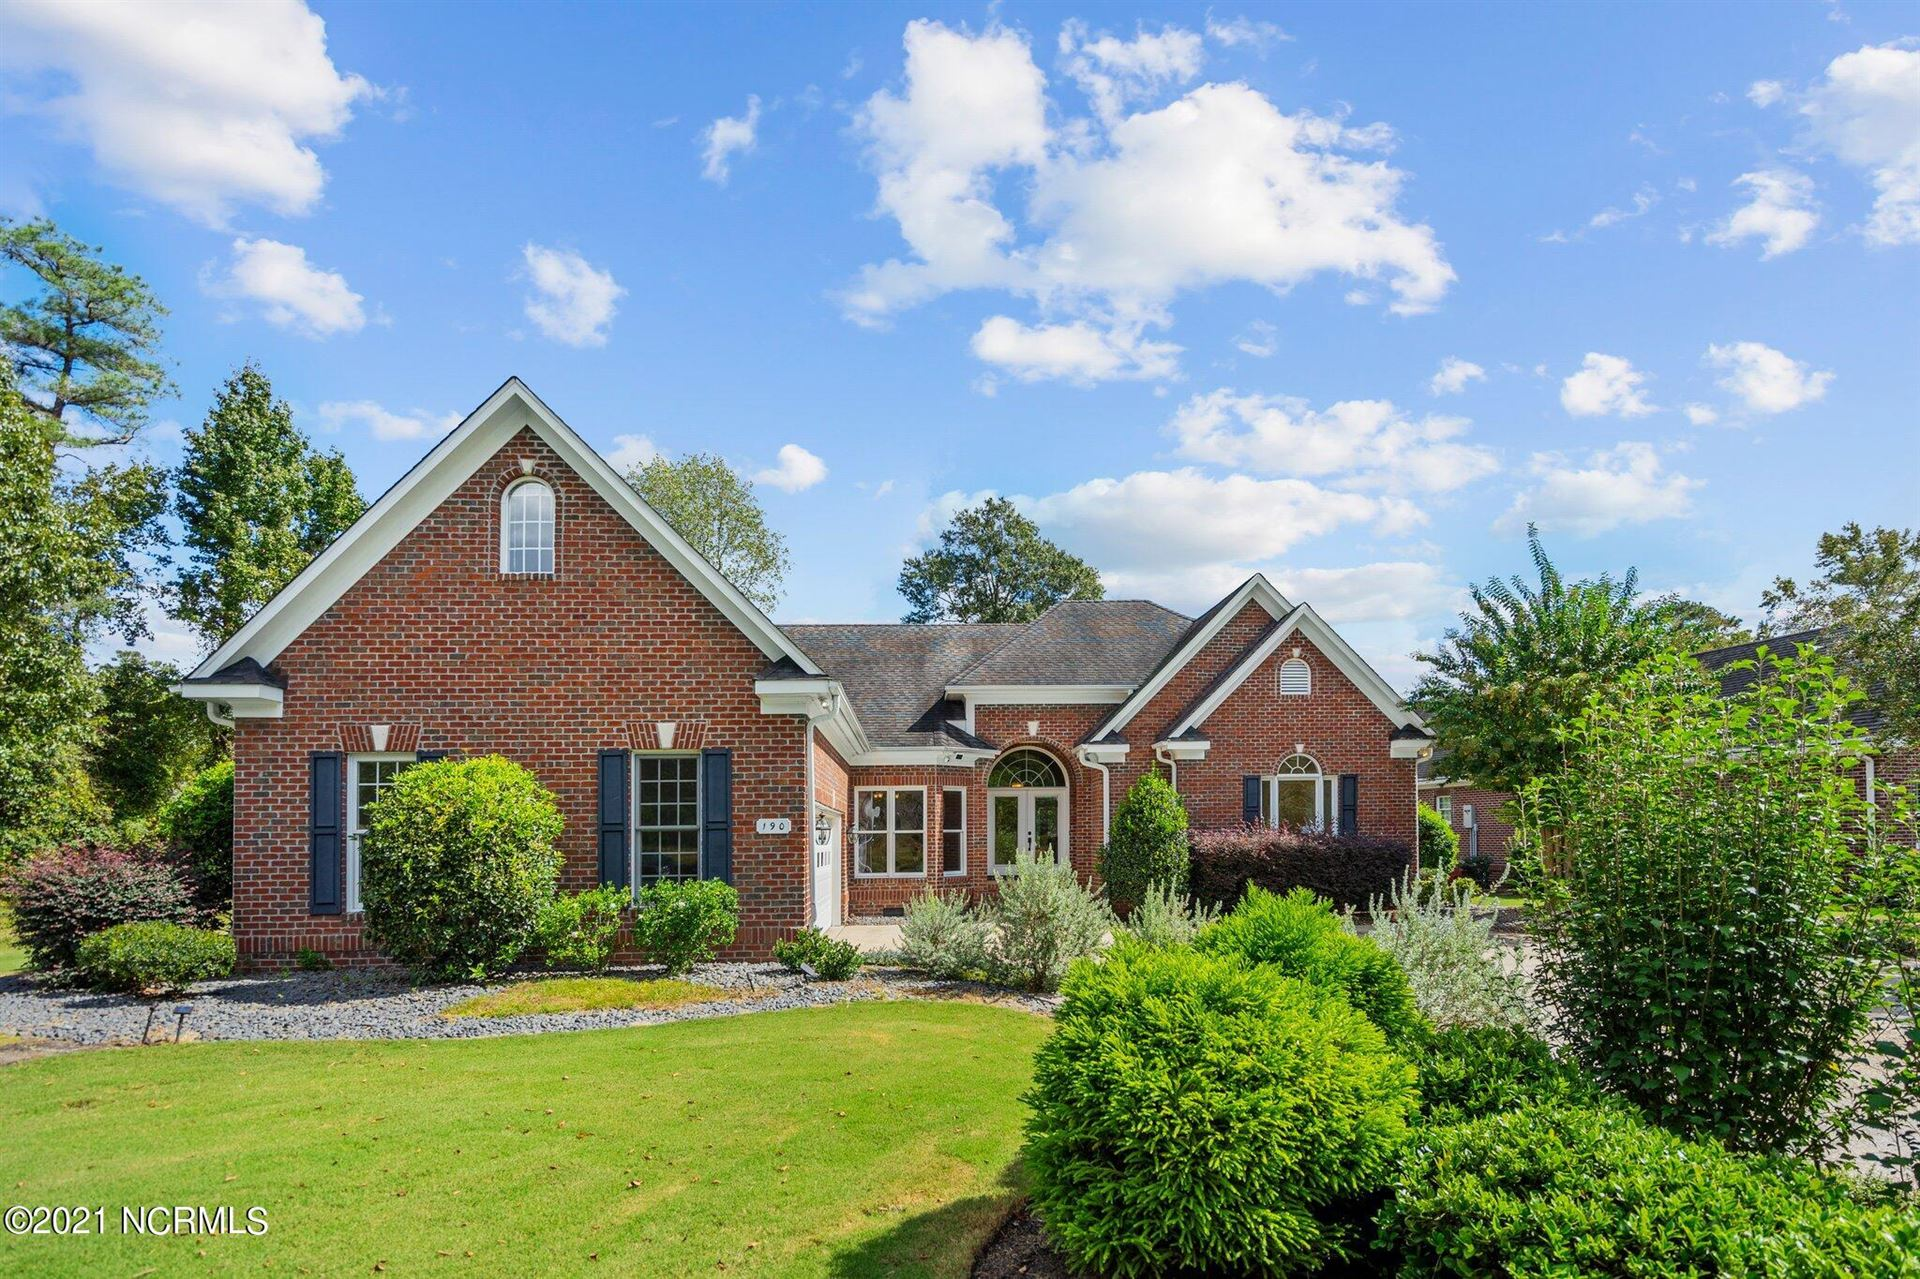 Photo of 190 Pilot House Drive, Wallace, NC 28466 (MLS # 100294131)